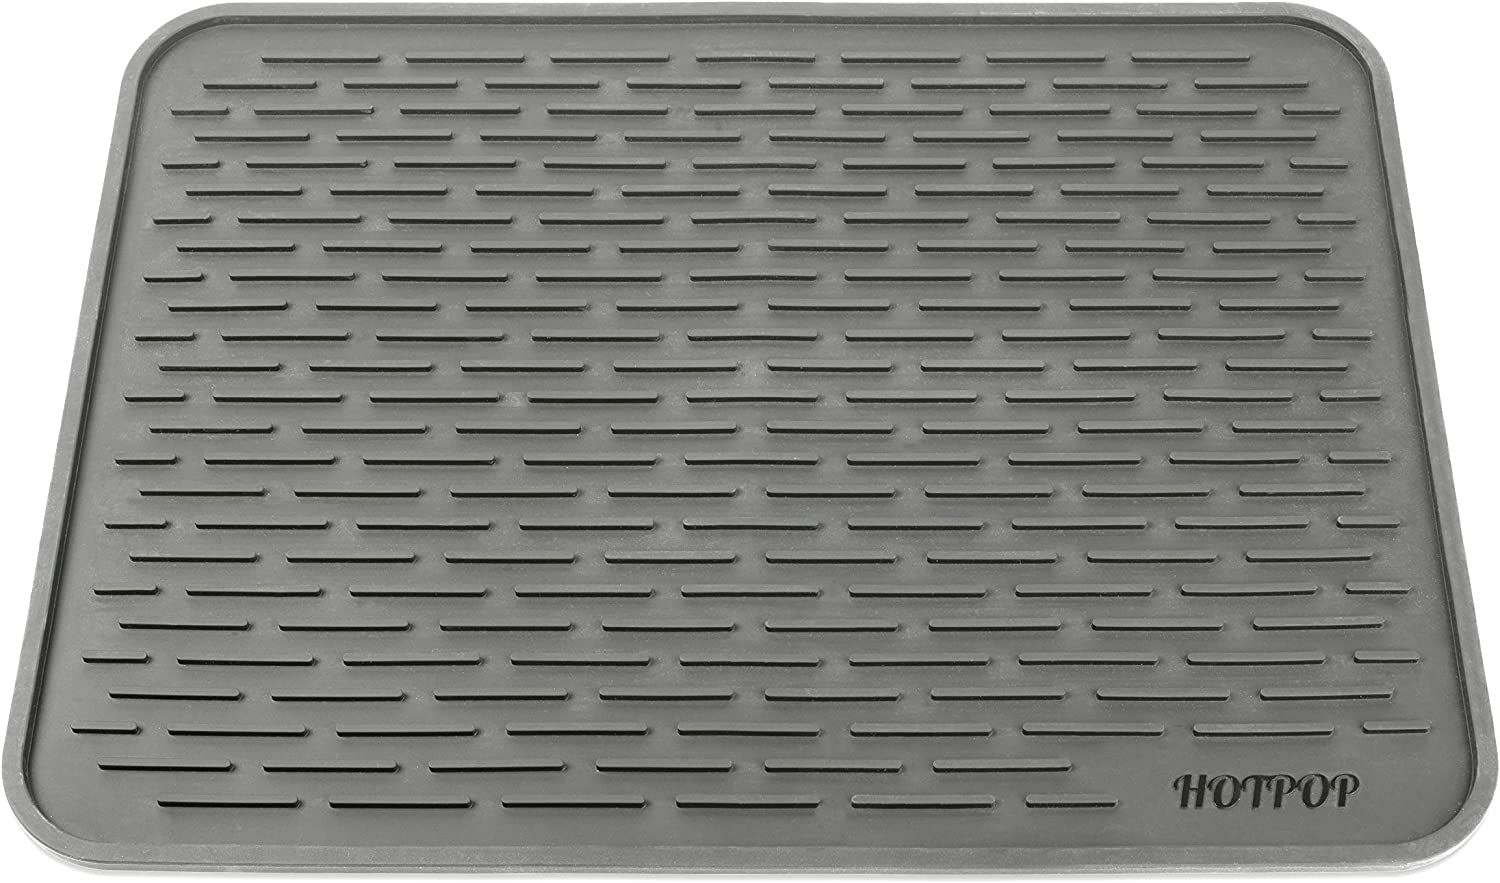 "HOTPOP XXL (24""x18"") Super Sturdy Silicone Dish Drying Mat and Trivet, Dishwasher Safe, Heat Resistant, Eco-Friendly (Gray)"